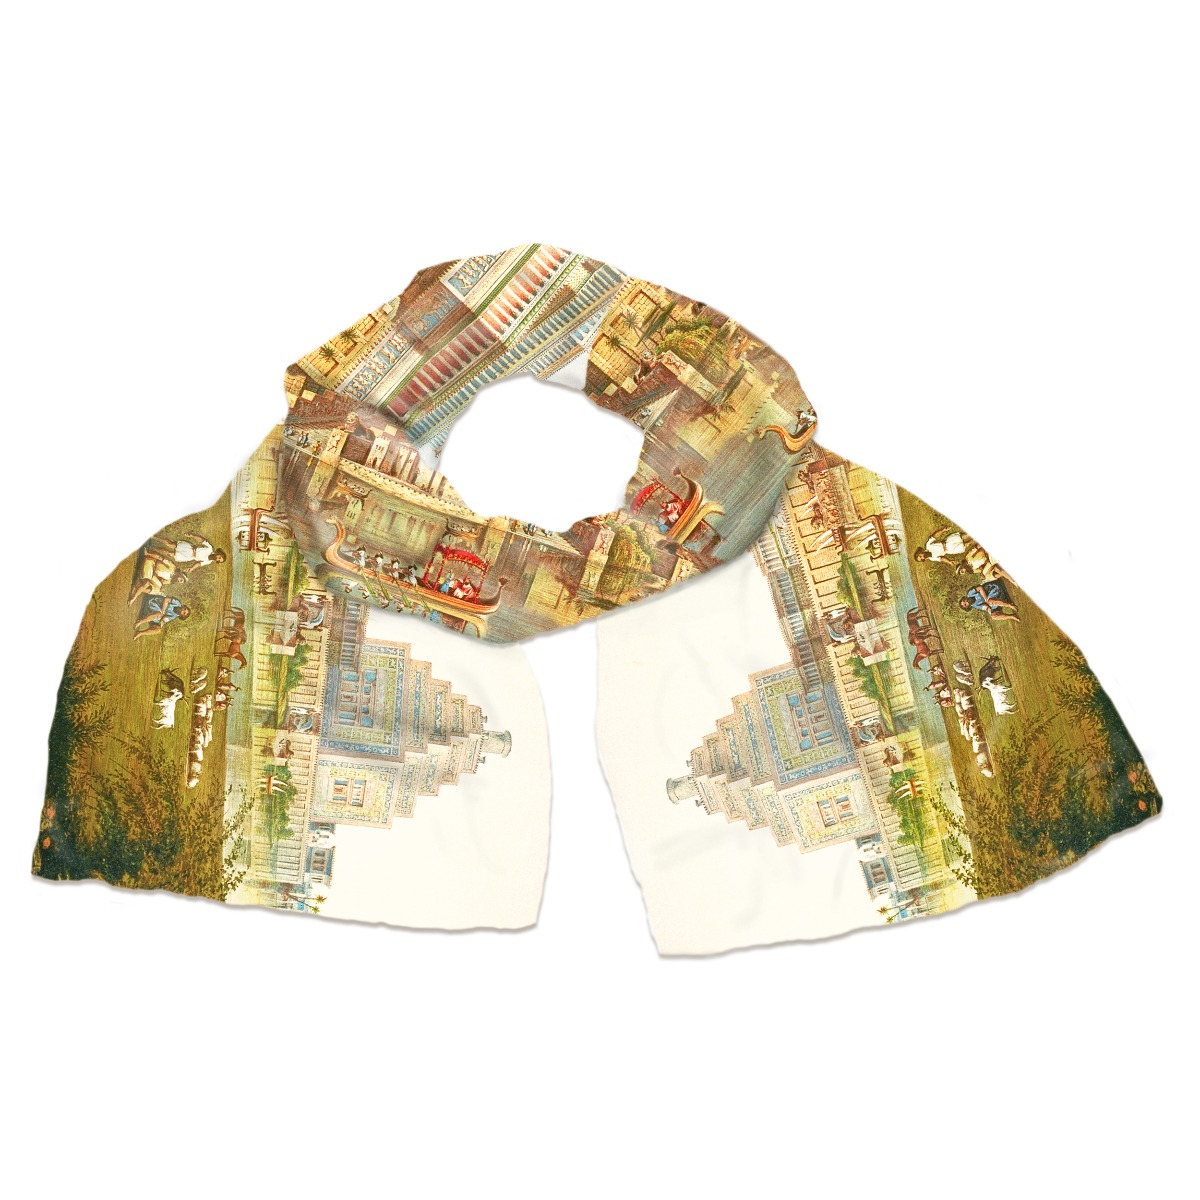 The Monuments of Nineveh silk scarf